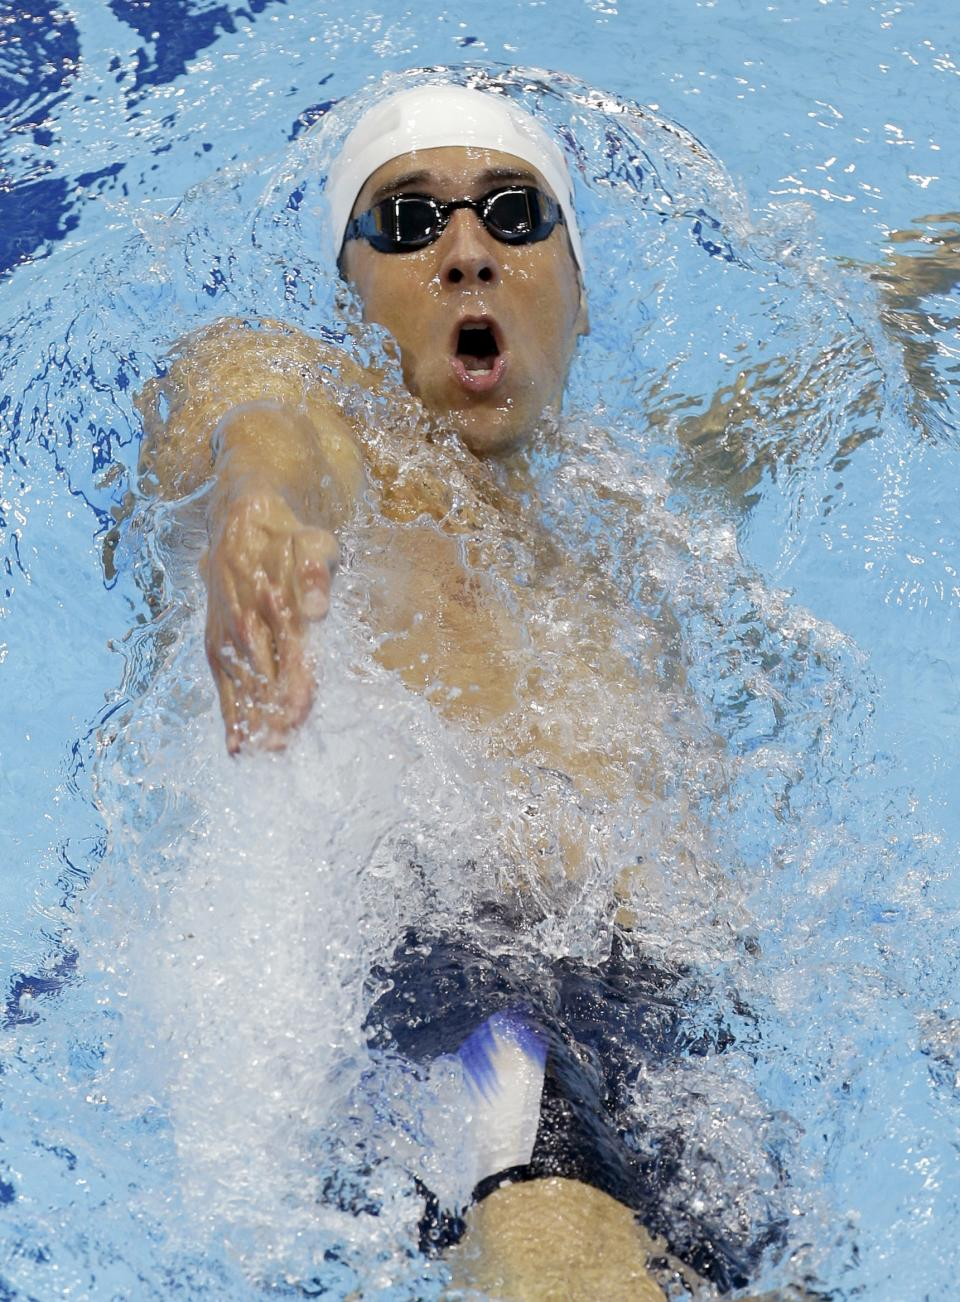 USA's Michael Phelps competes in a heat of the men's 400-meter individual medley at the Aquatics Centre in the Olympic Park during the 2012 Summer Olympics in London, Saturday, July 28, 2012. (AP Photo/Lee Jin-man)